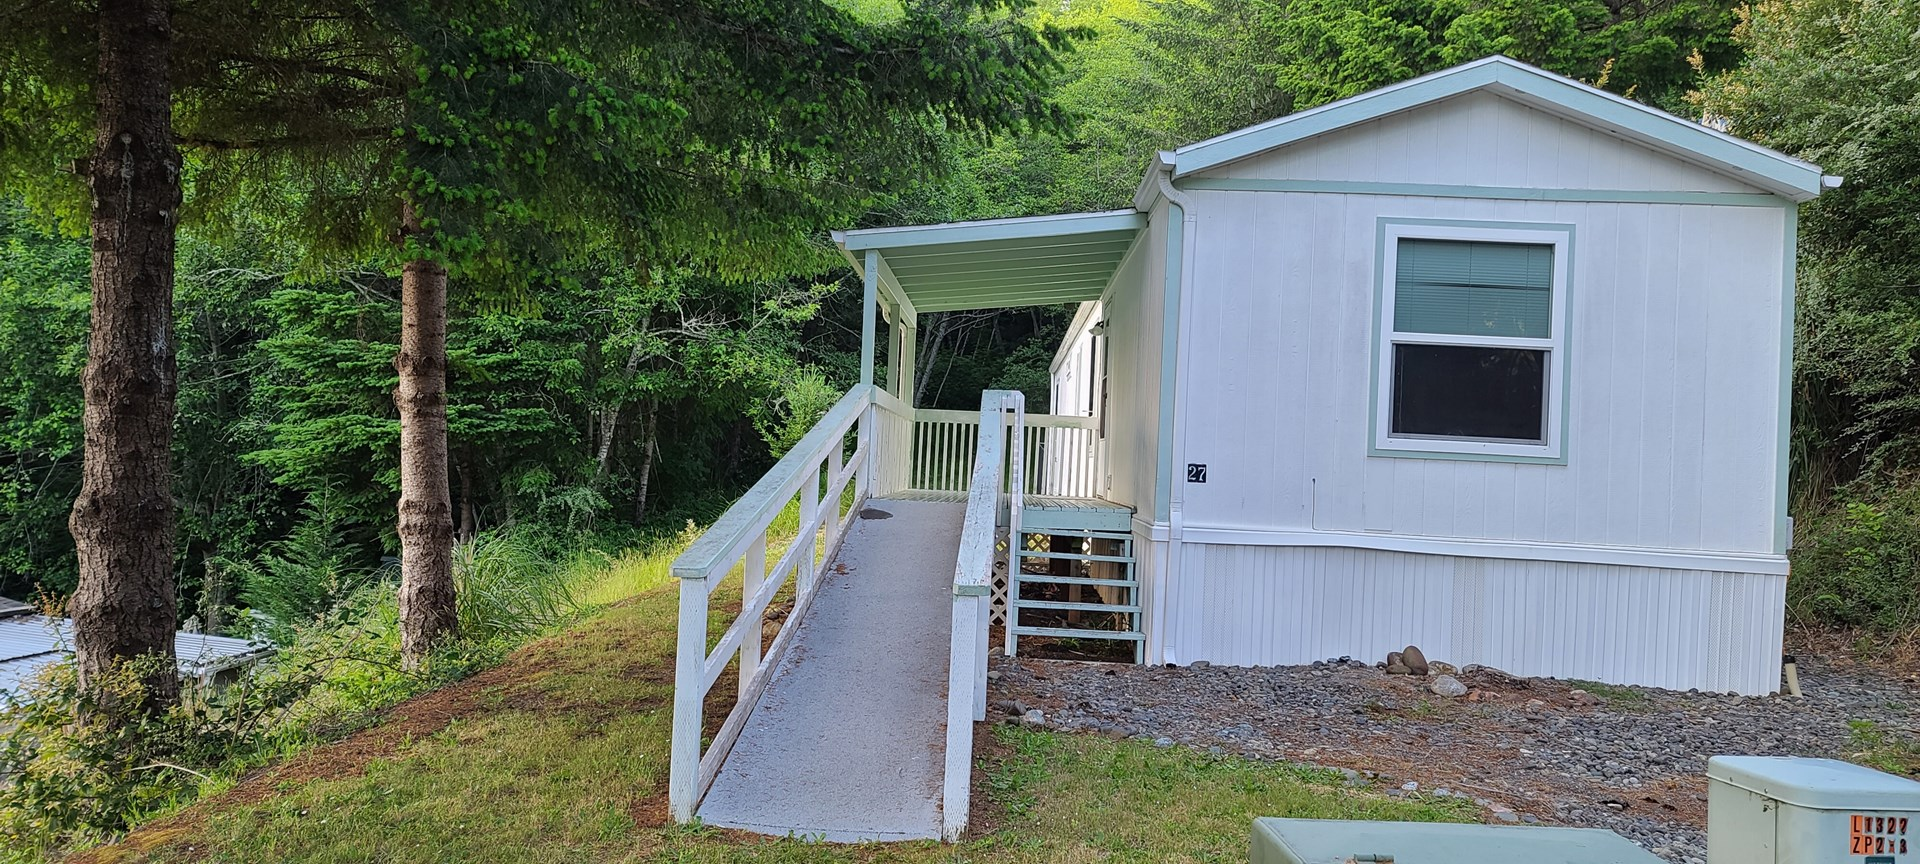 MANUFACTURED HOME IN 55+ PARK FOR SALE ON OREGON COAST